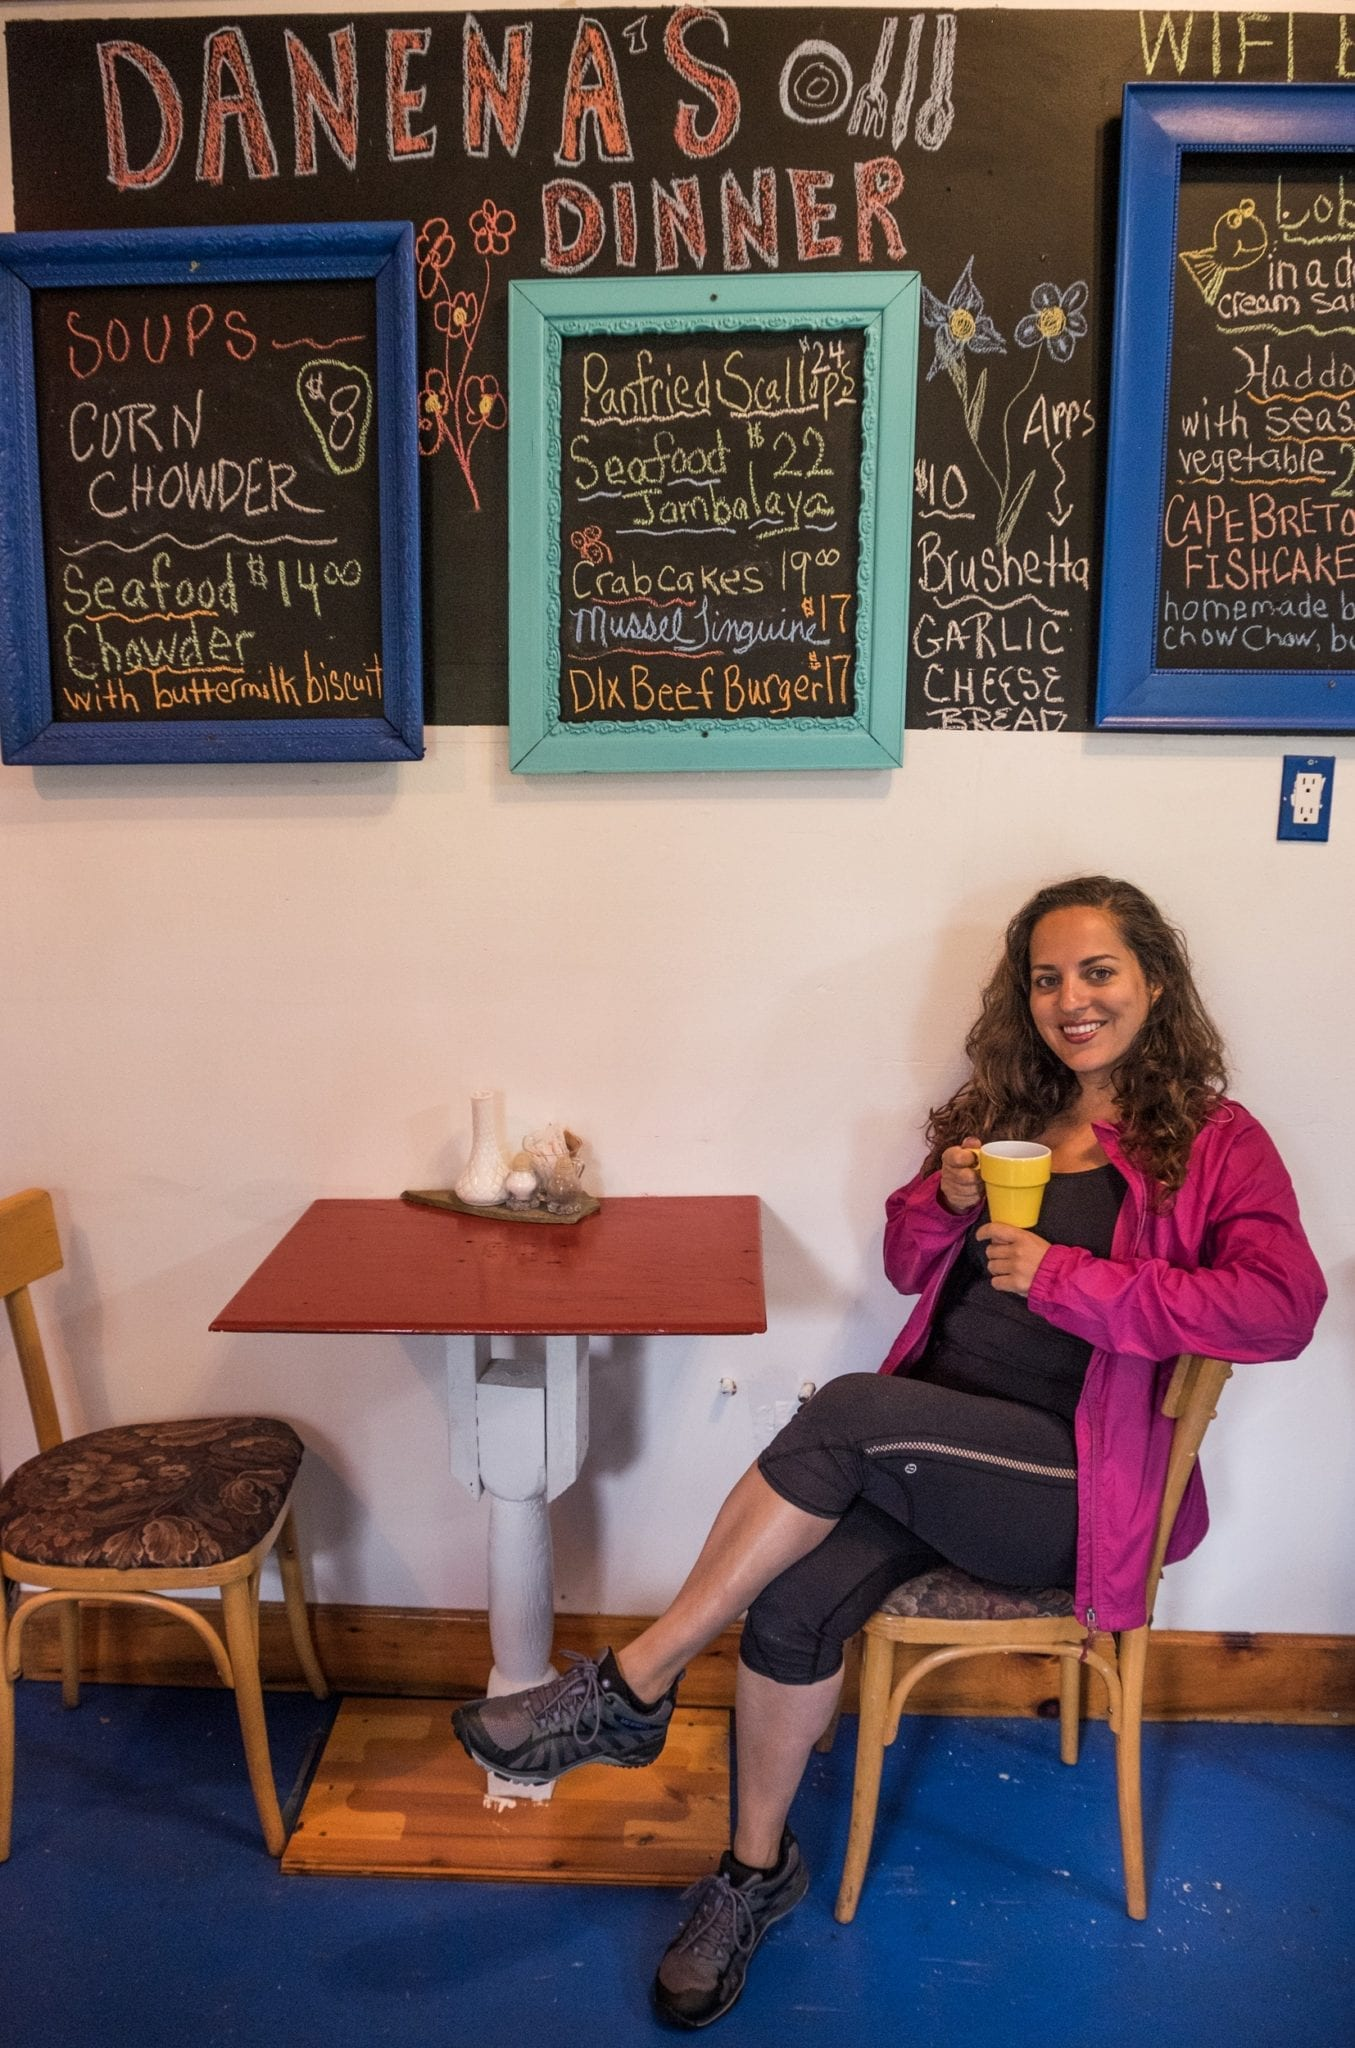 Kate wears a pink coat and smiles while holding a cup of coffee at a table beneath a blackboard detailing the restaurant's specials.